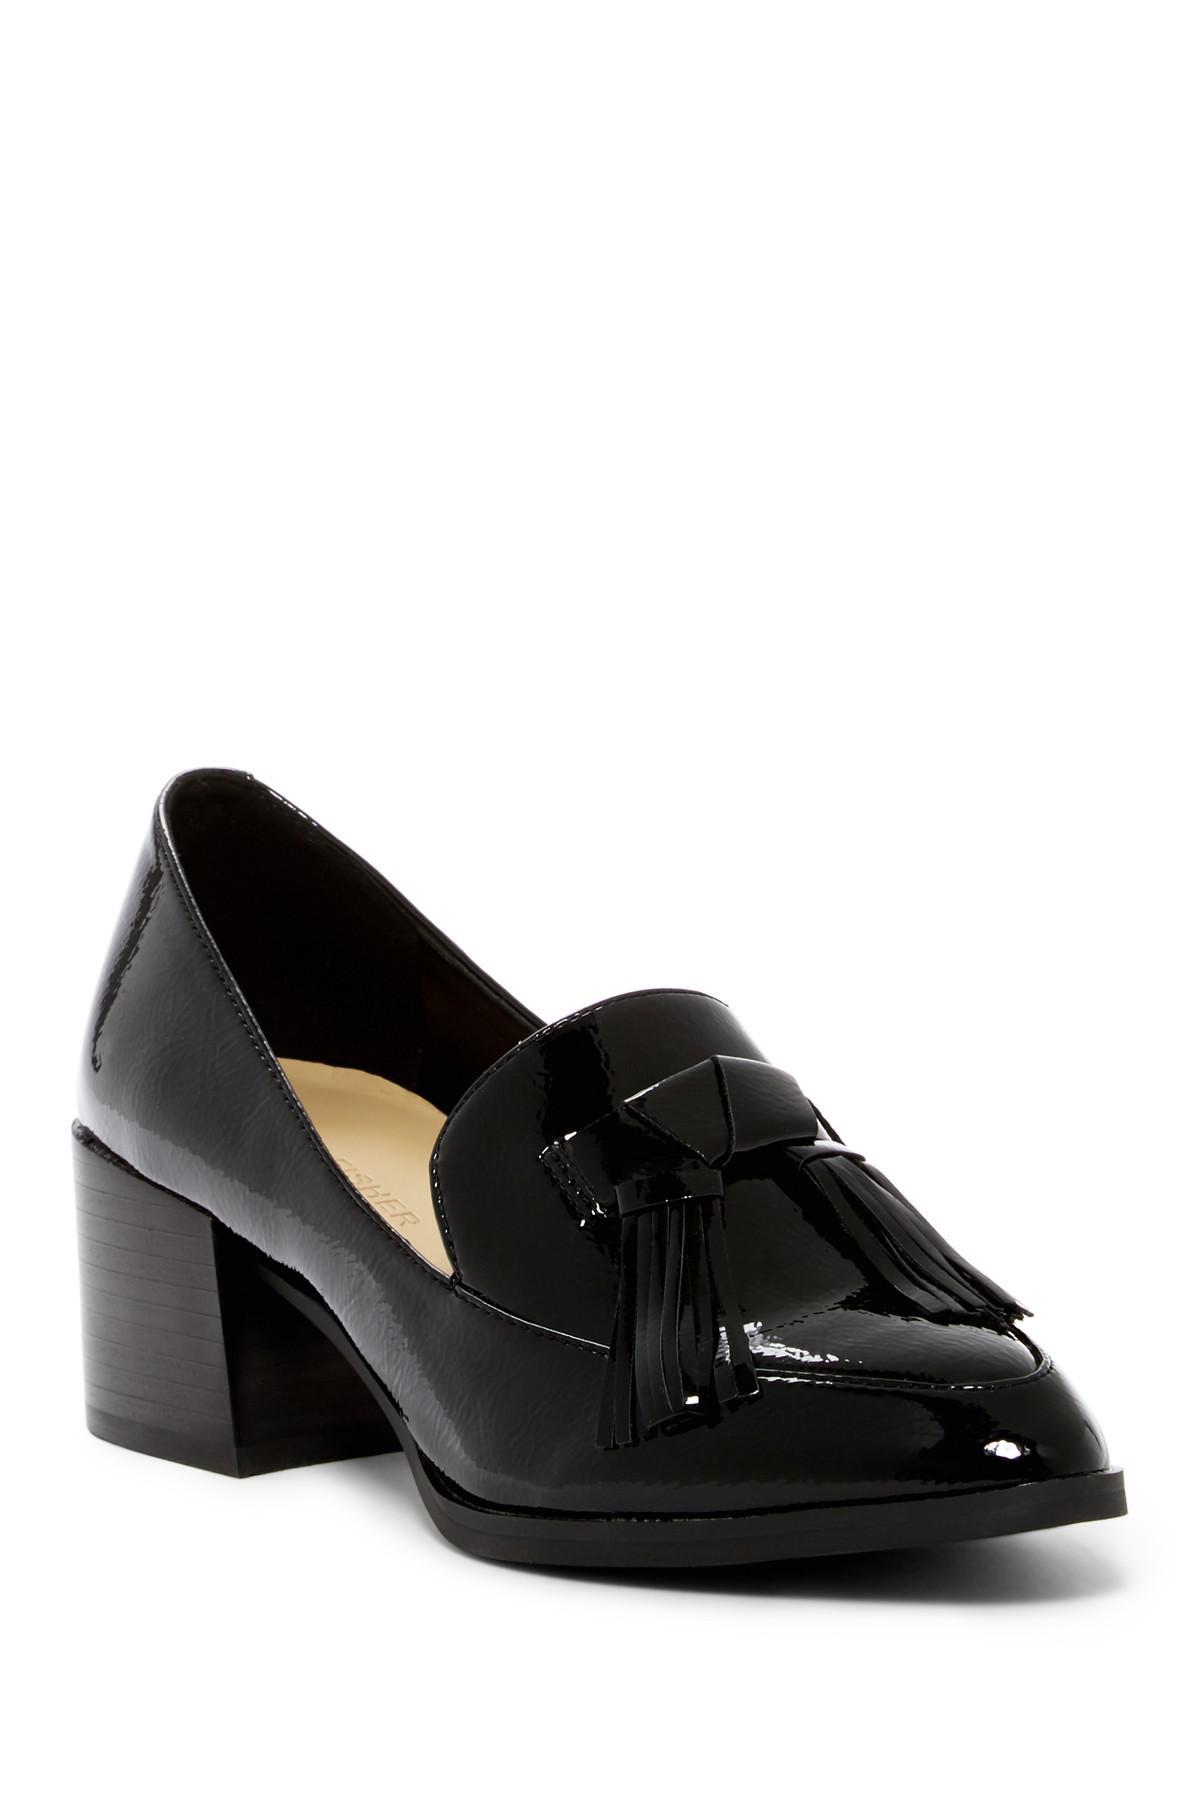 d1a44e8a77b Lyst - Marc Fisher Phylicia Block Heel Loafer in Black